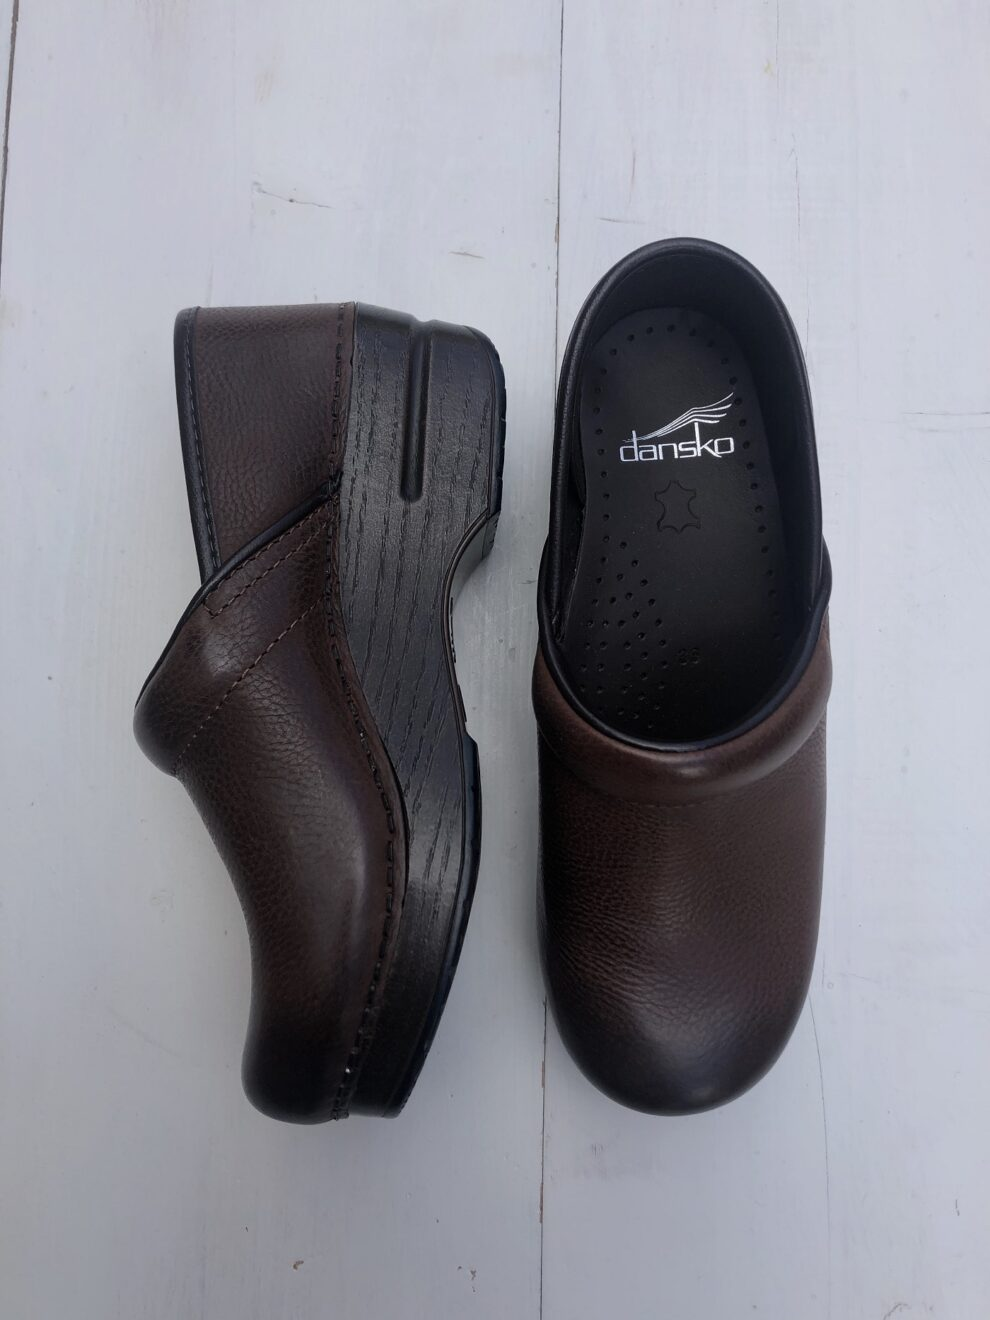 Dansko Professional Burnished Nubuck particolare - laterale